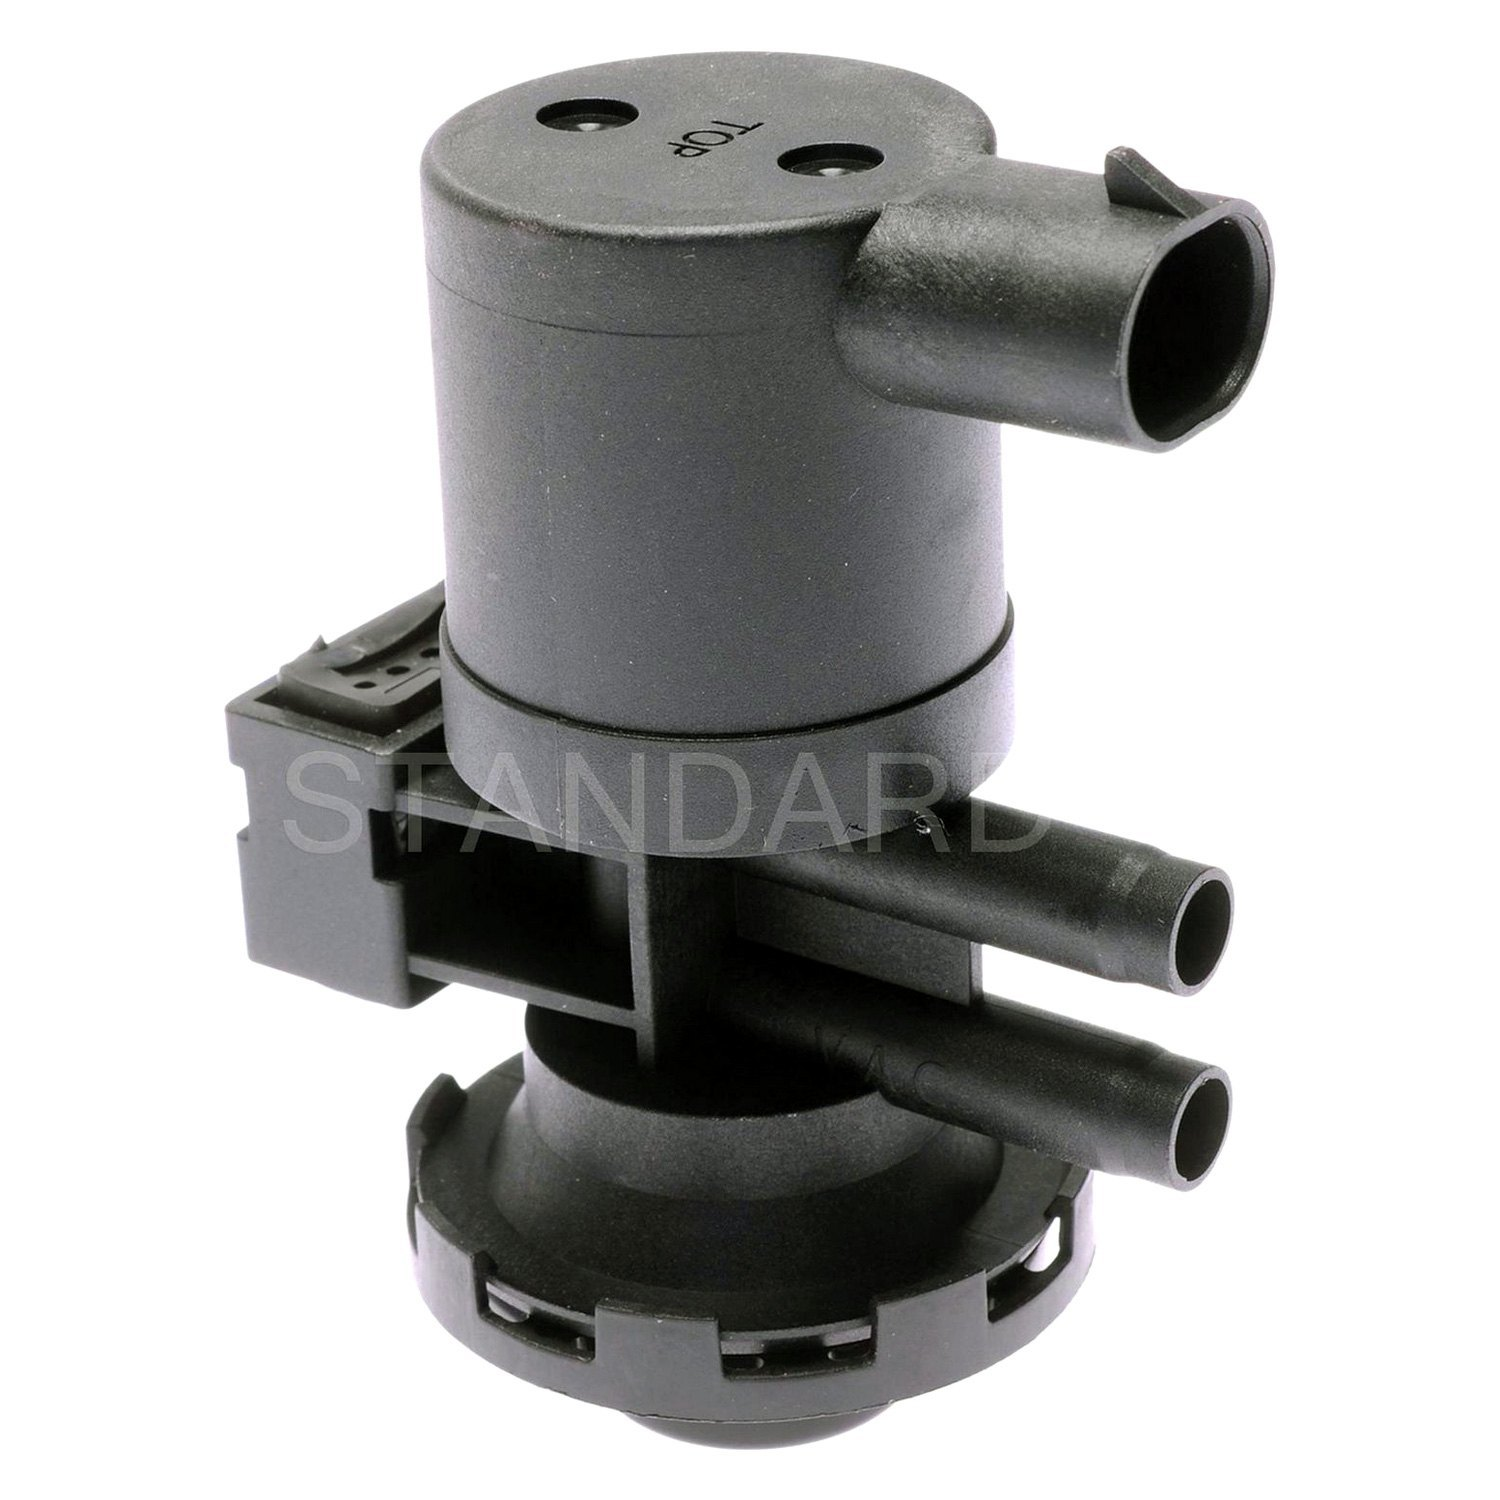 Standard Motor Products S9620 Ignition Coil